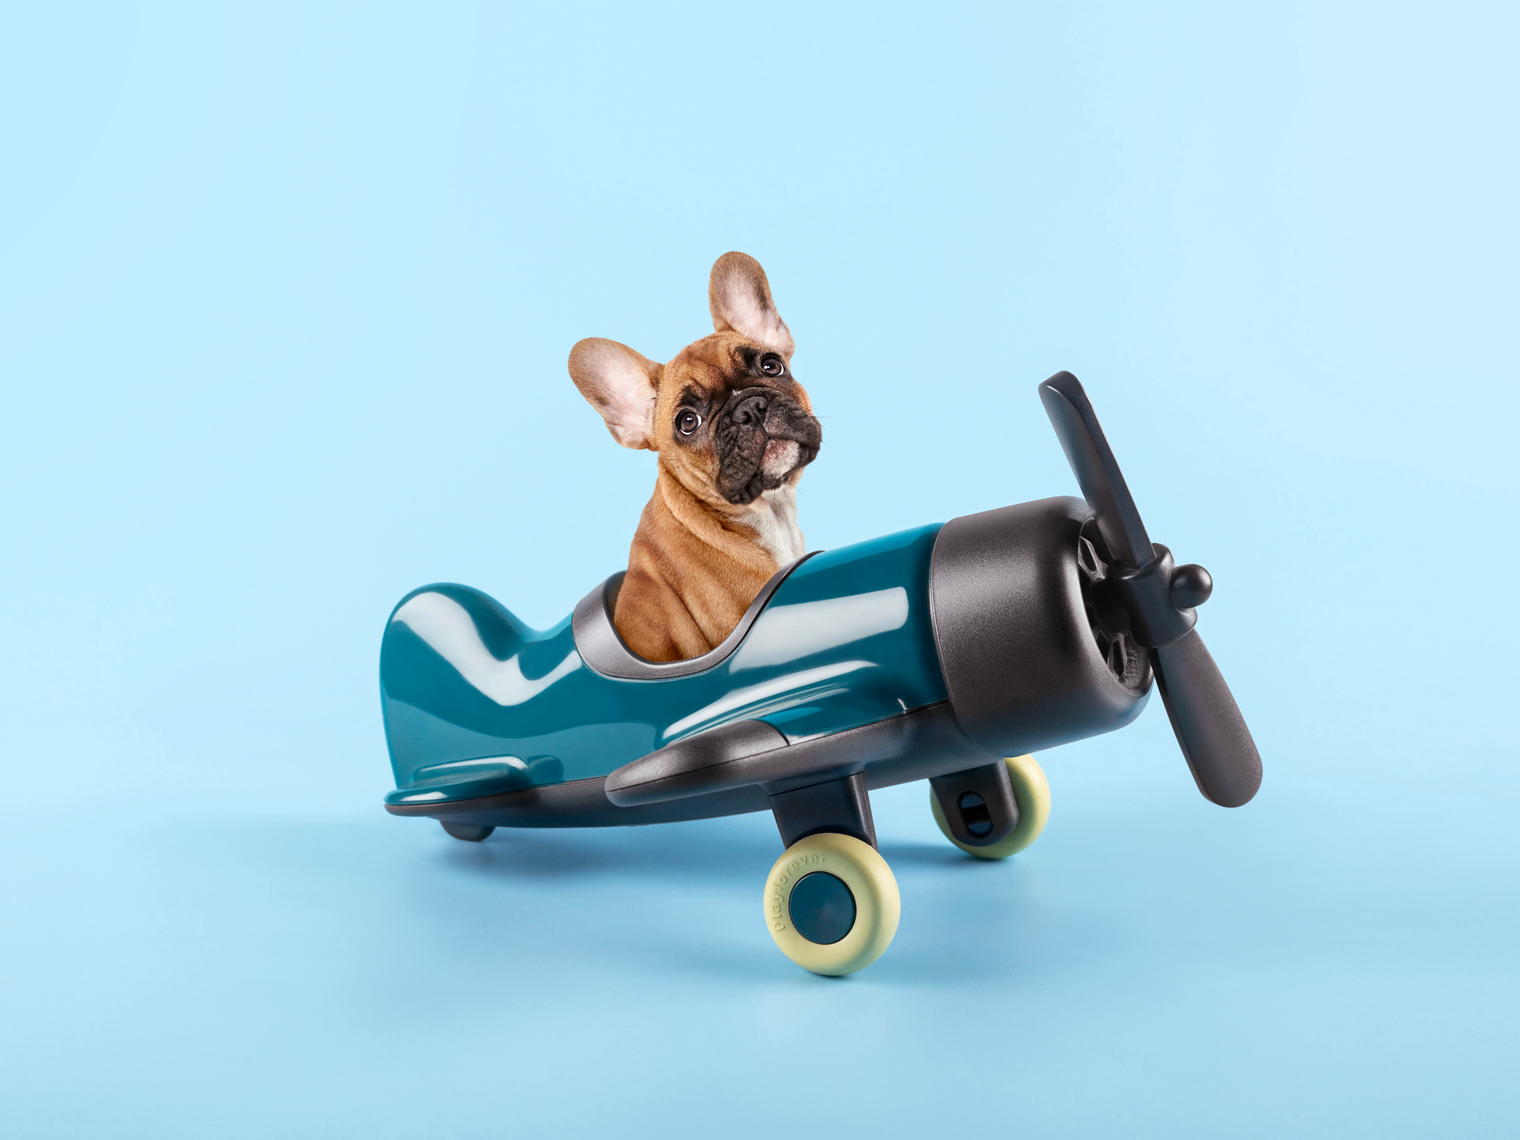 French bulldog puppy in a toy airplane